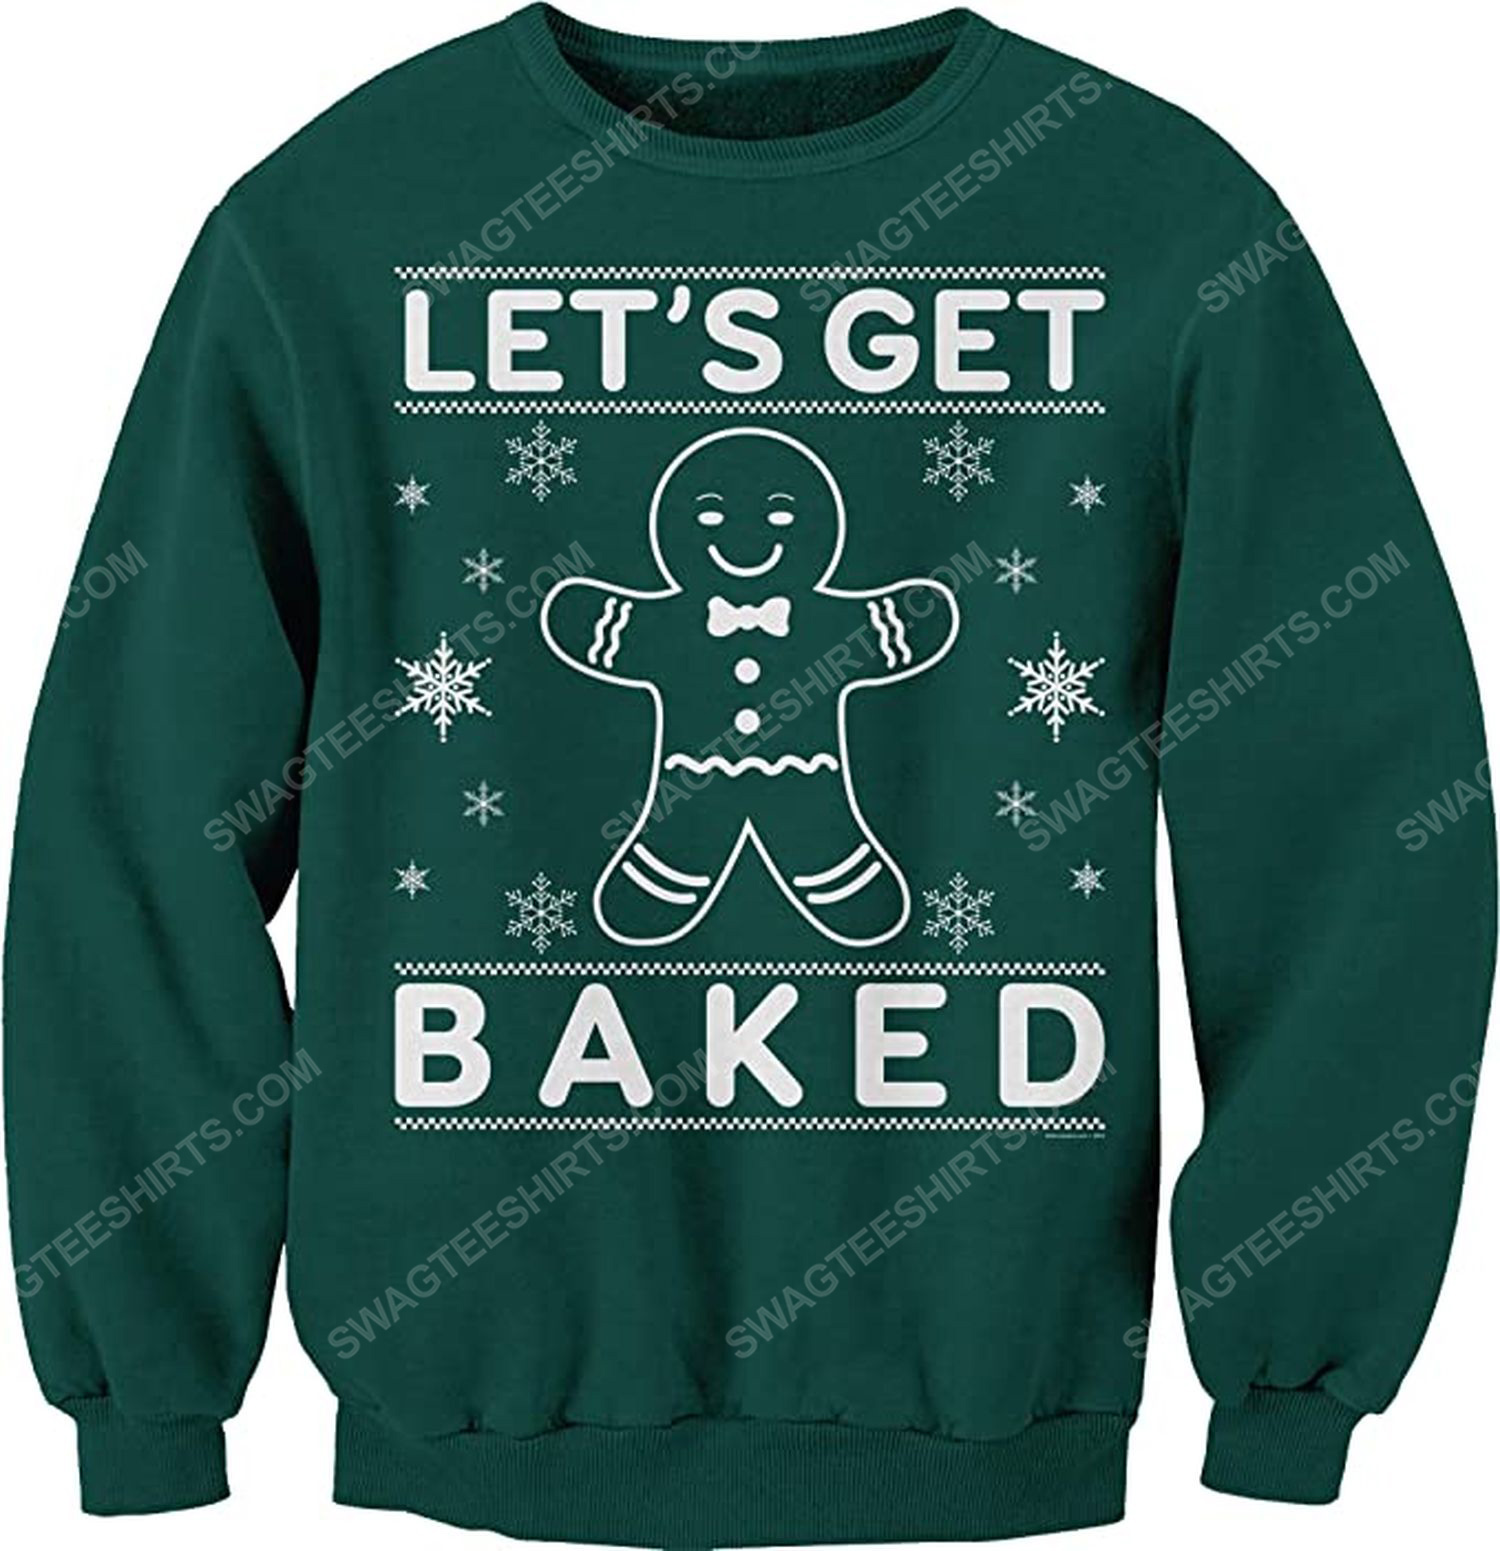 Let's get baked happy gingerbread full print ugly christmas sweater 2